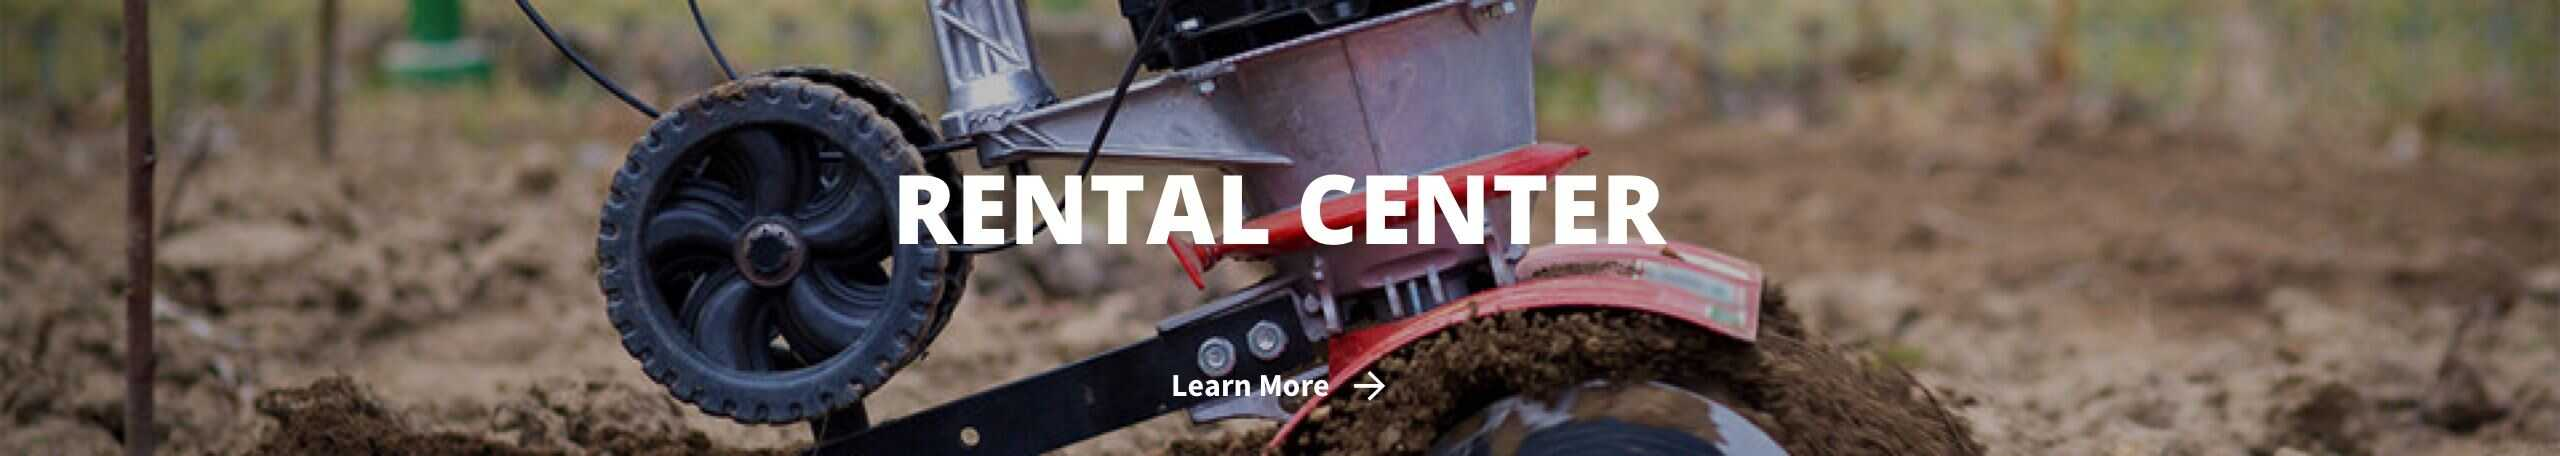 Rental Center with rental equipment in dirt